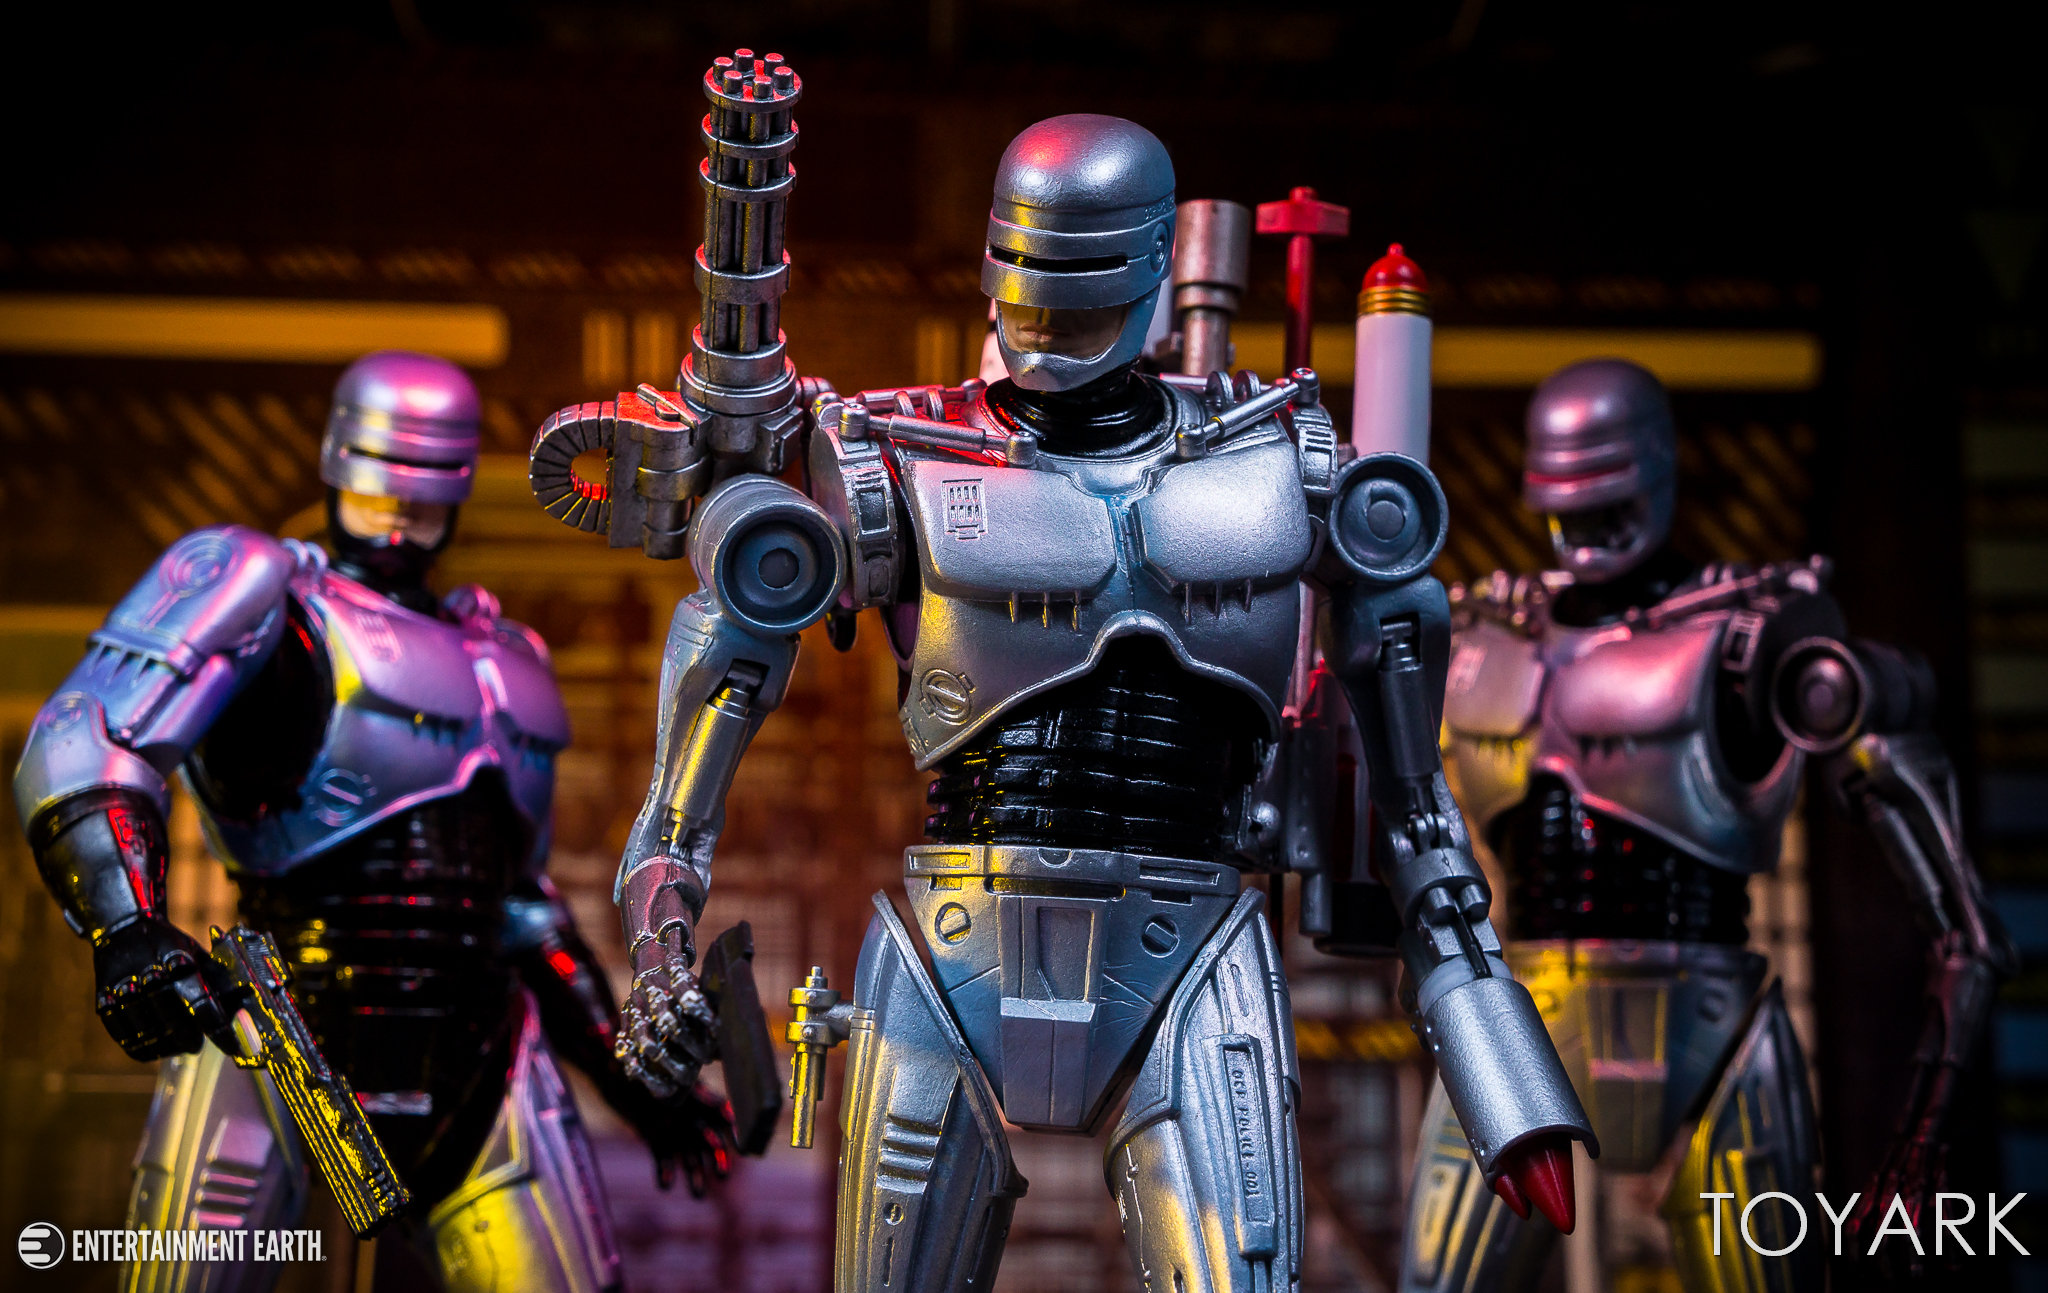 http://news.toyark.com/wp-content/uploads/sites/4/2018/02/NECA-Ult-Future-Robocop-042.jpg